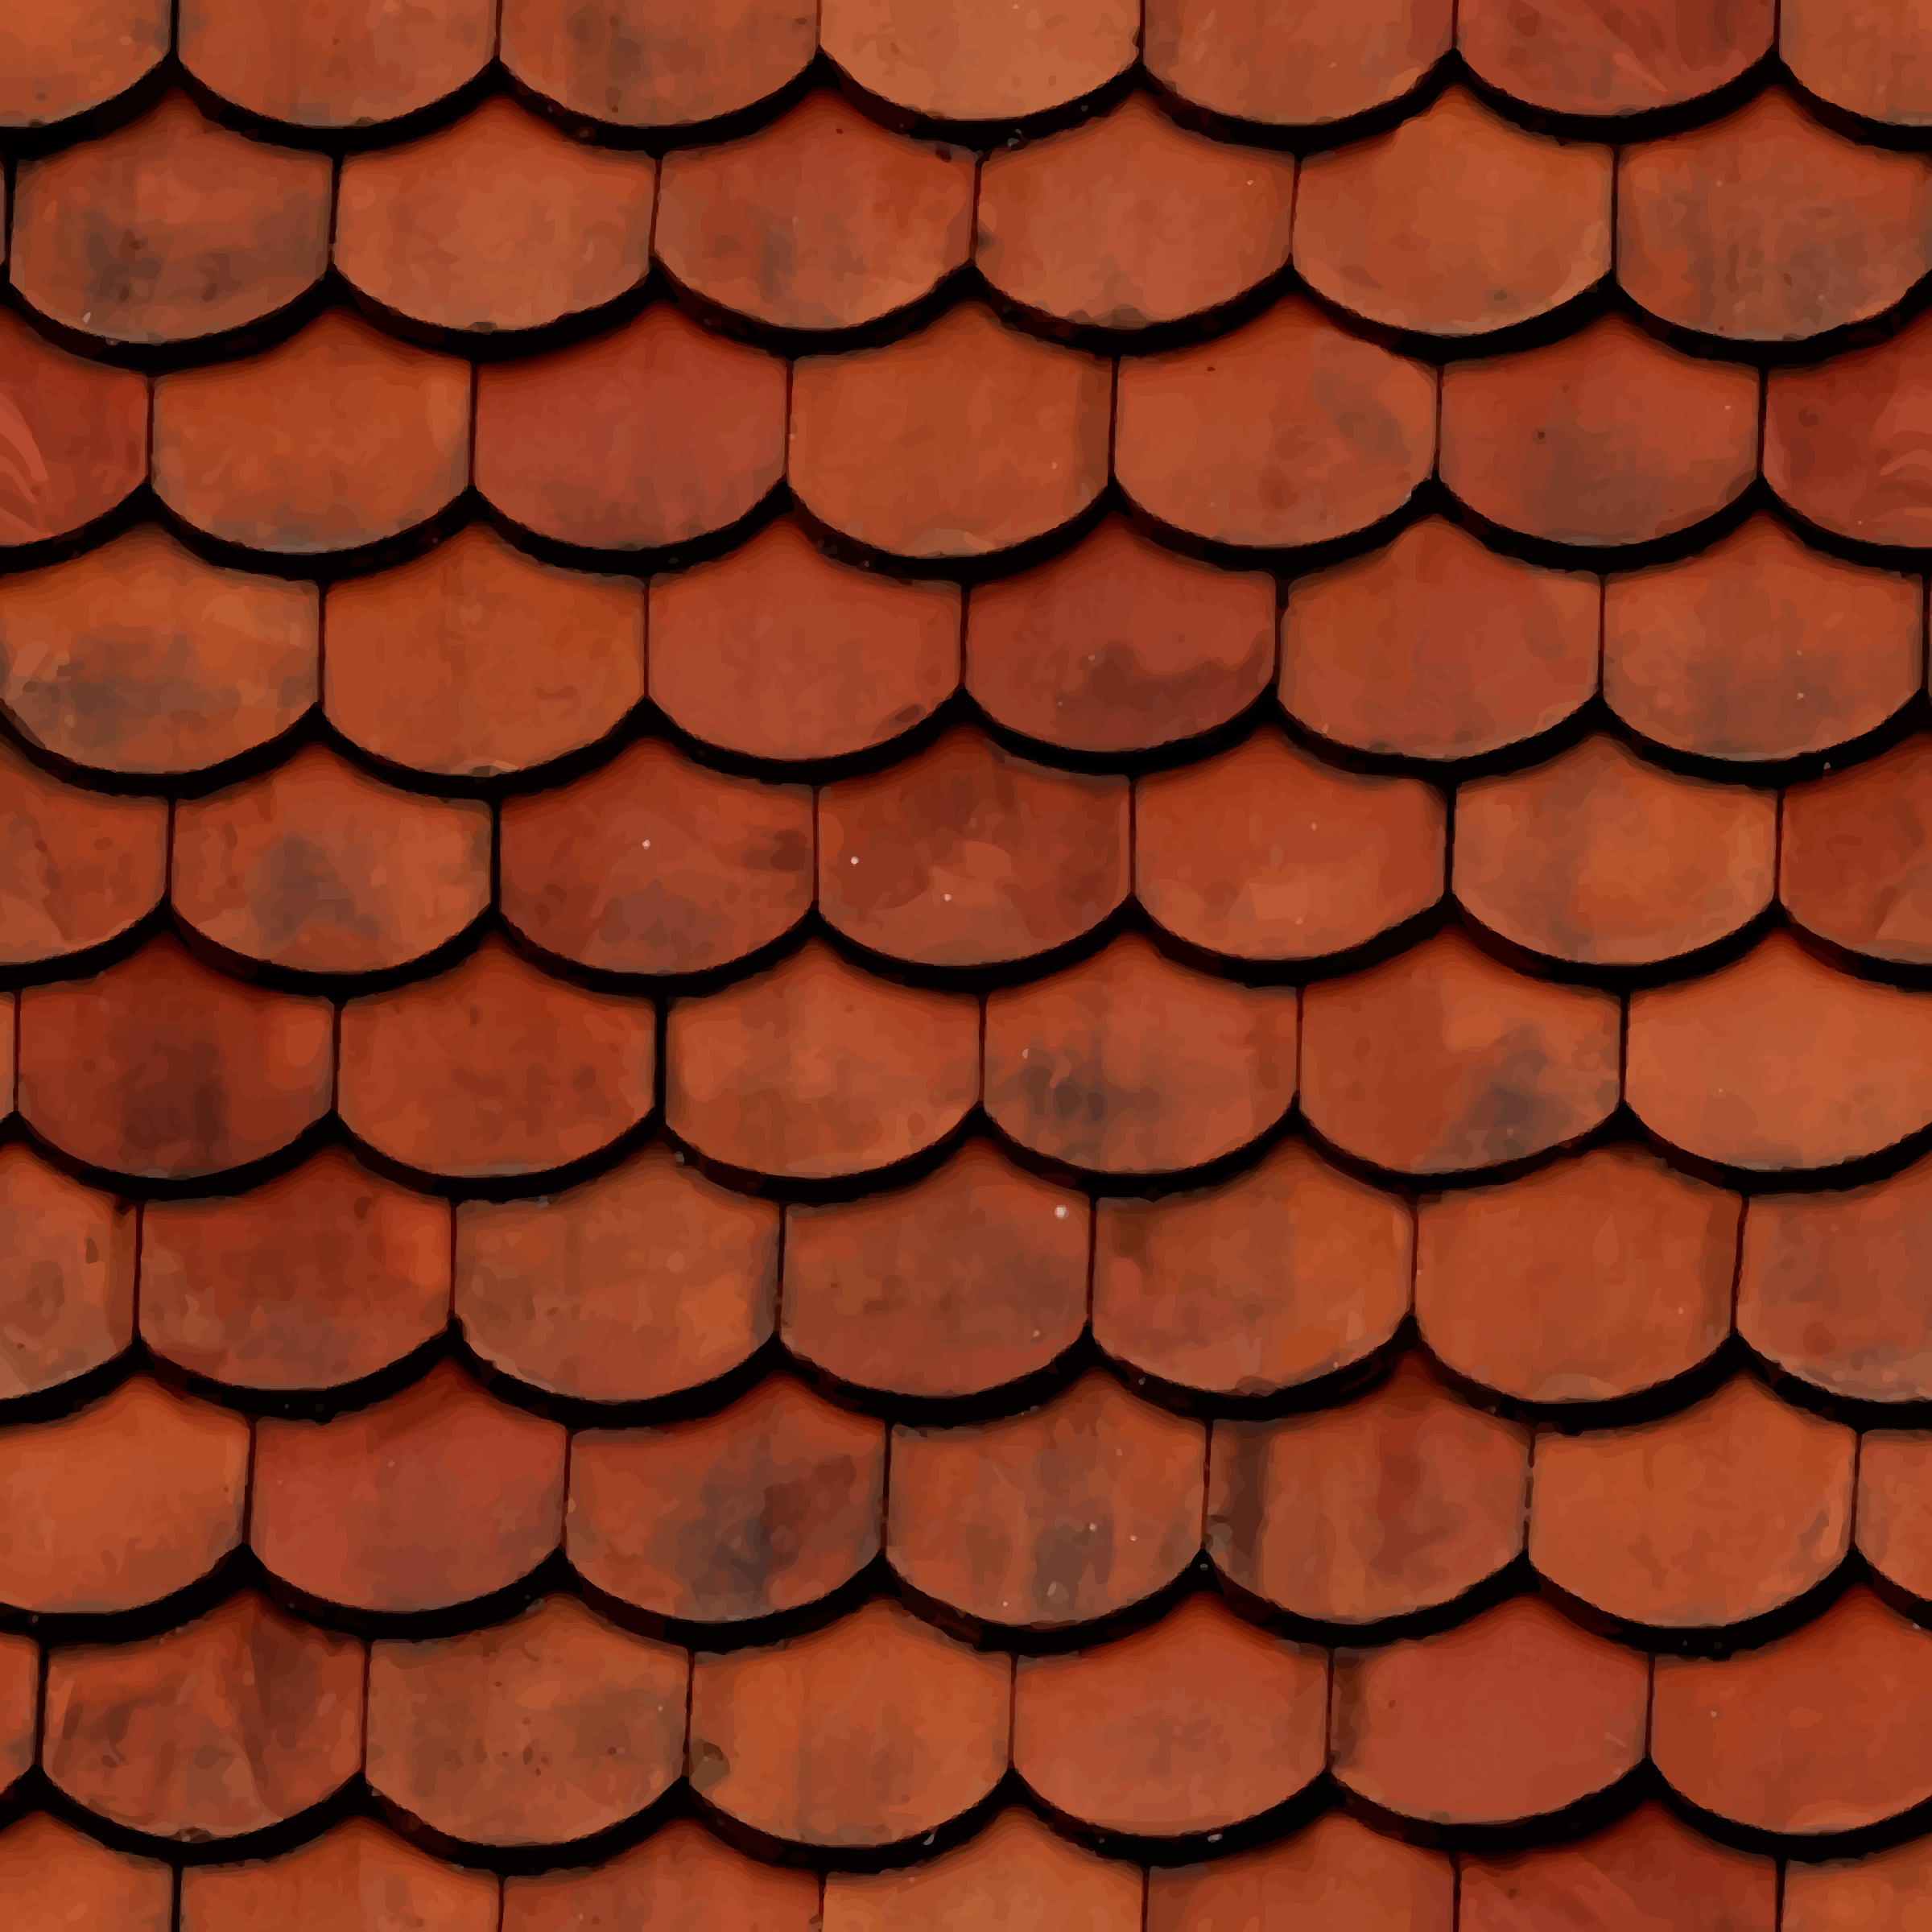 Roof clipart. Tiles big image png